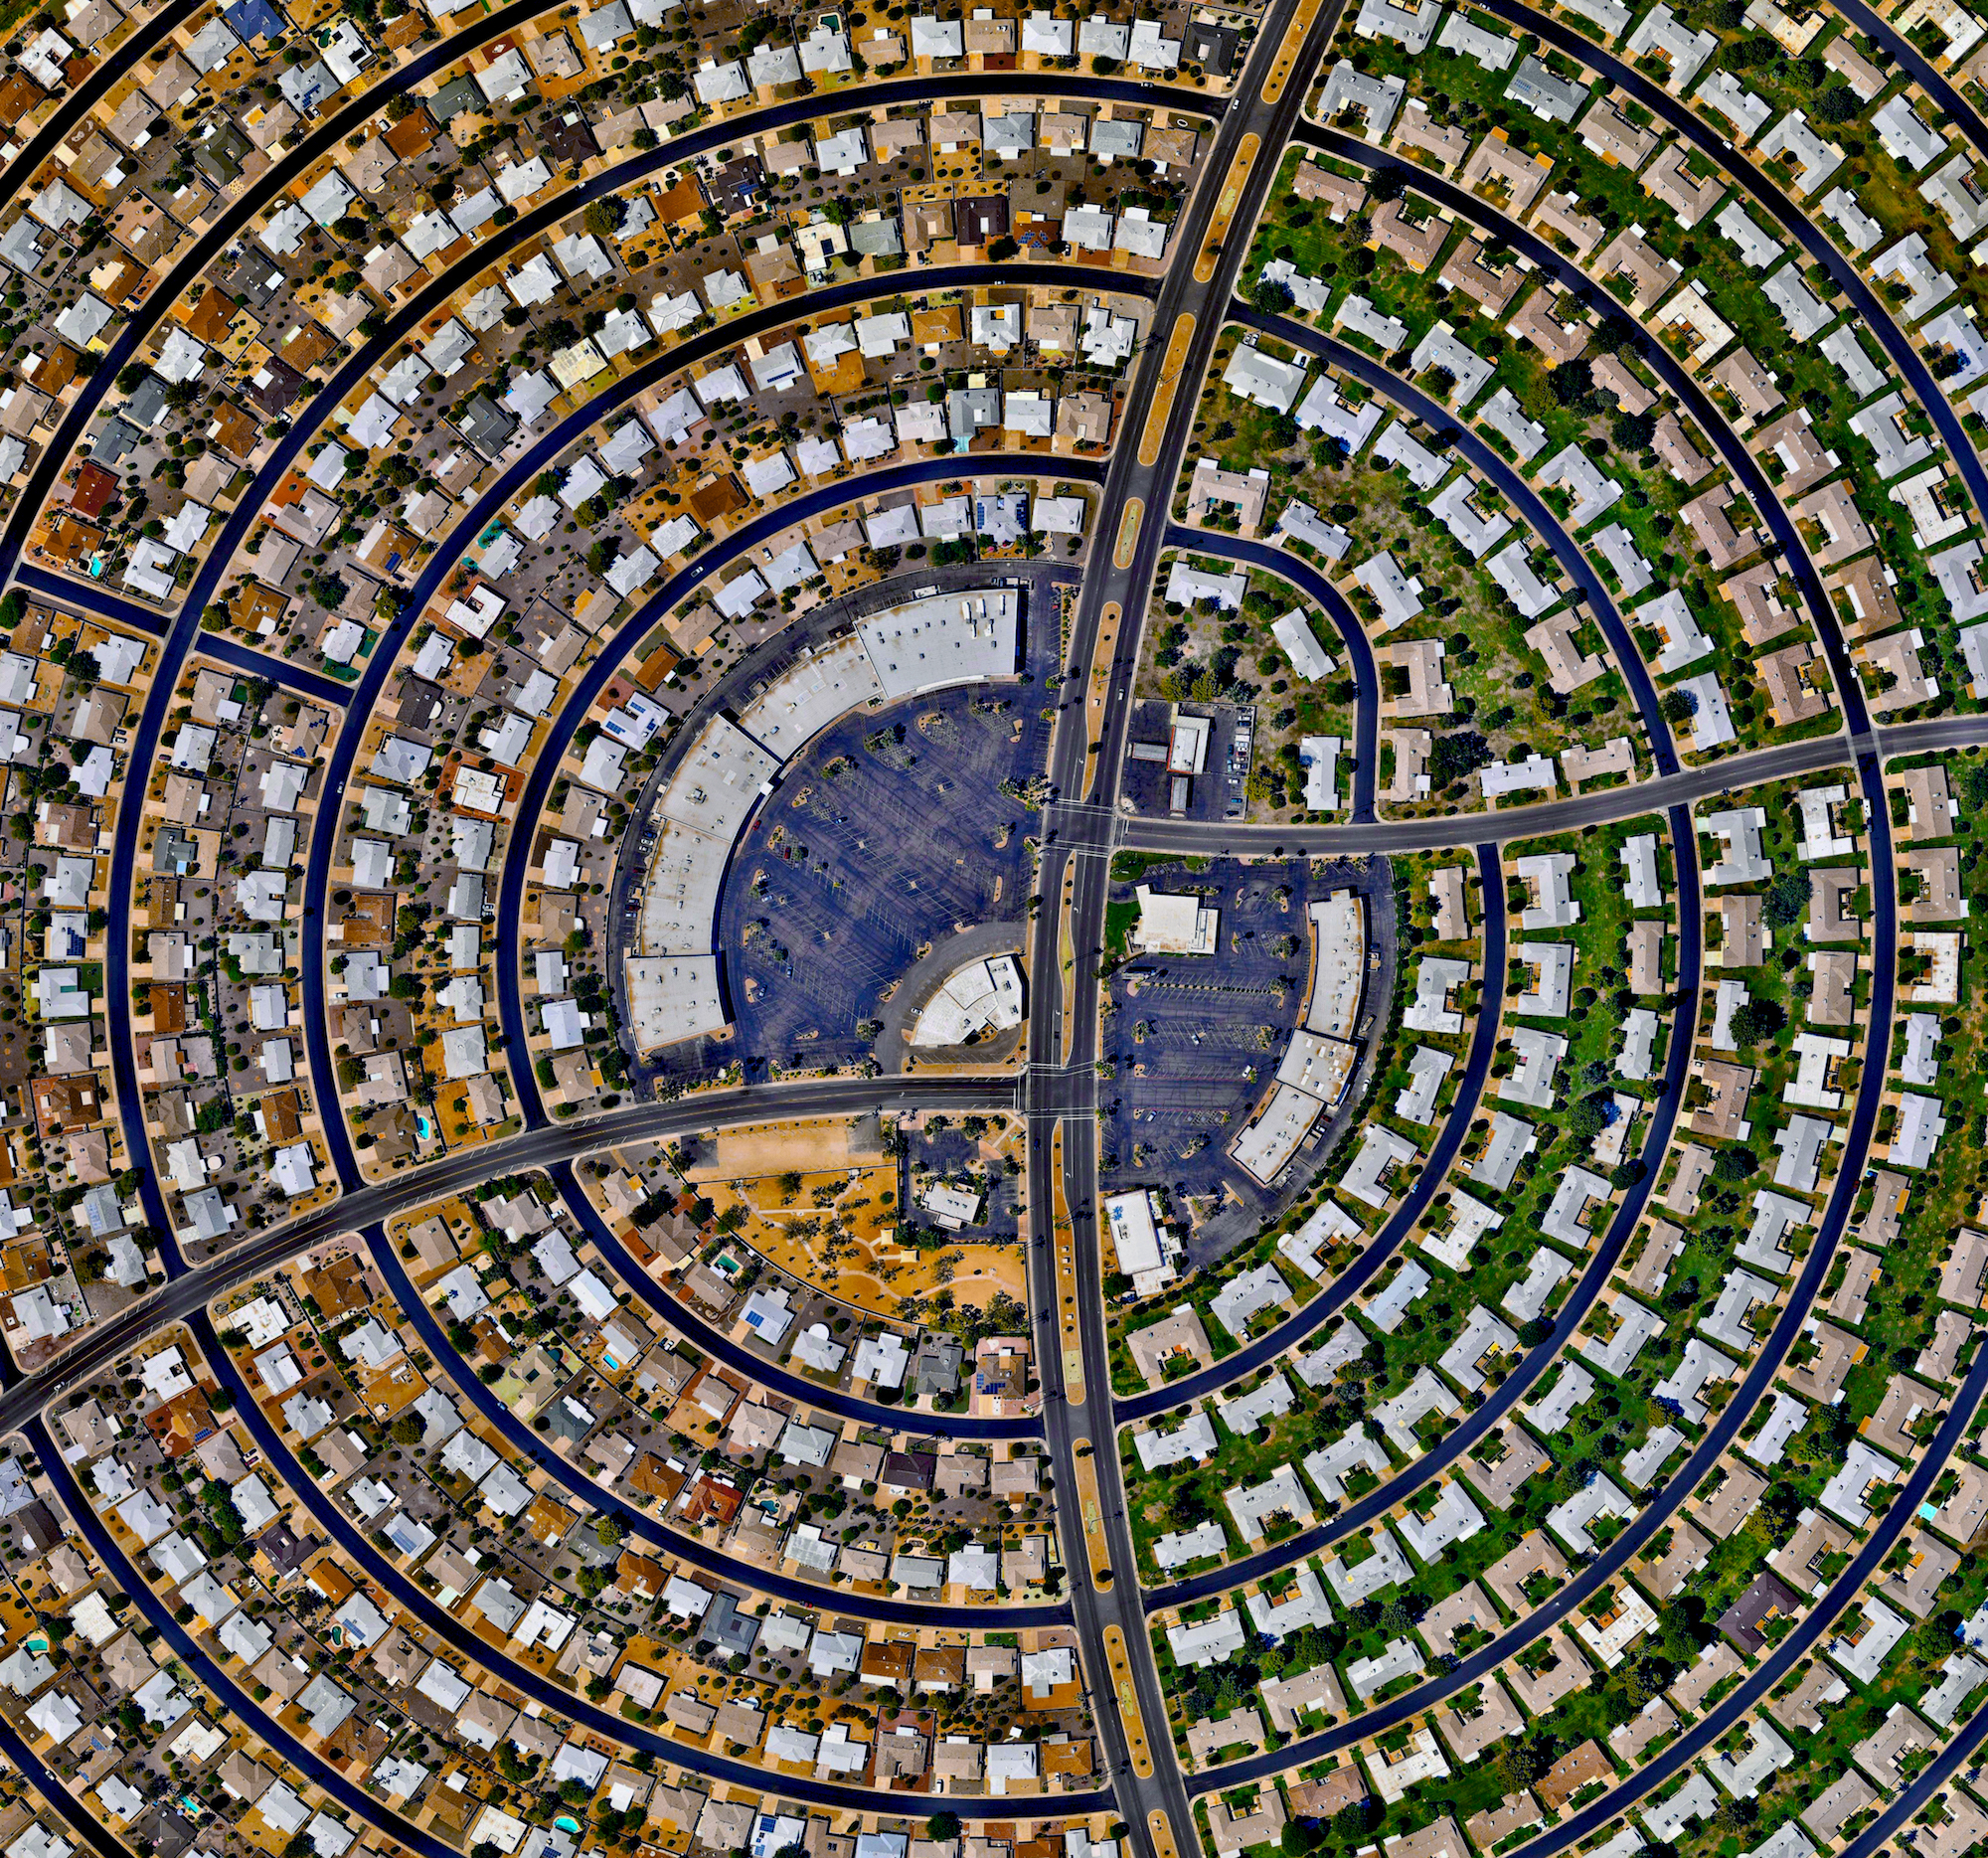 """9/23/2016   Sun City   Sun City, Arizona, USA  33.6189504, -112.291099    Houses, built in concentric circles, make up a section of Sun City, Arizona, USA. When the development opened on January 1, 1960, the event attracted a crowd of more than 100,000 onlookers and the """"futuristic development"""" was featured on the cover of Time magazine."""